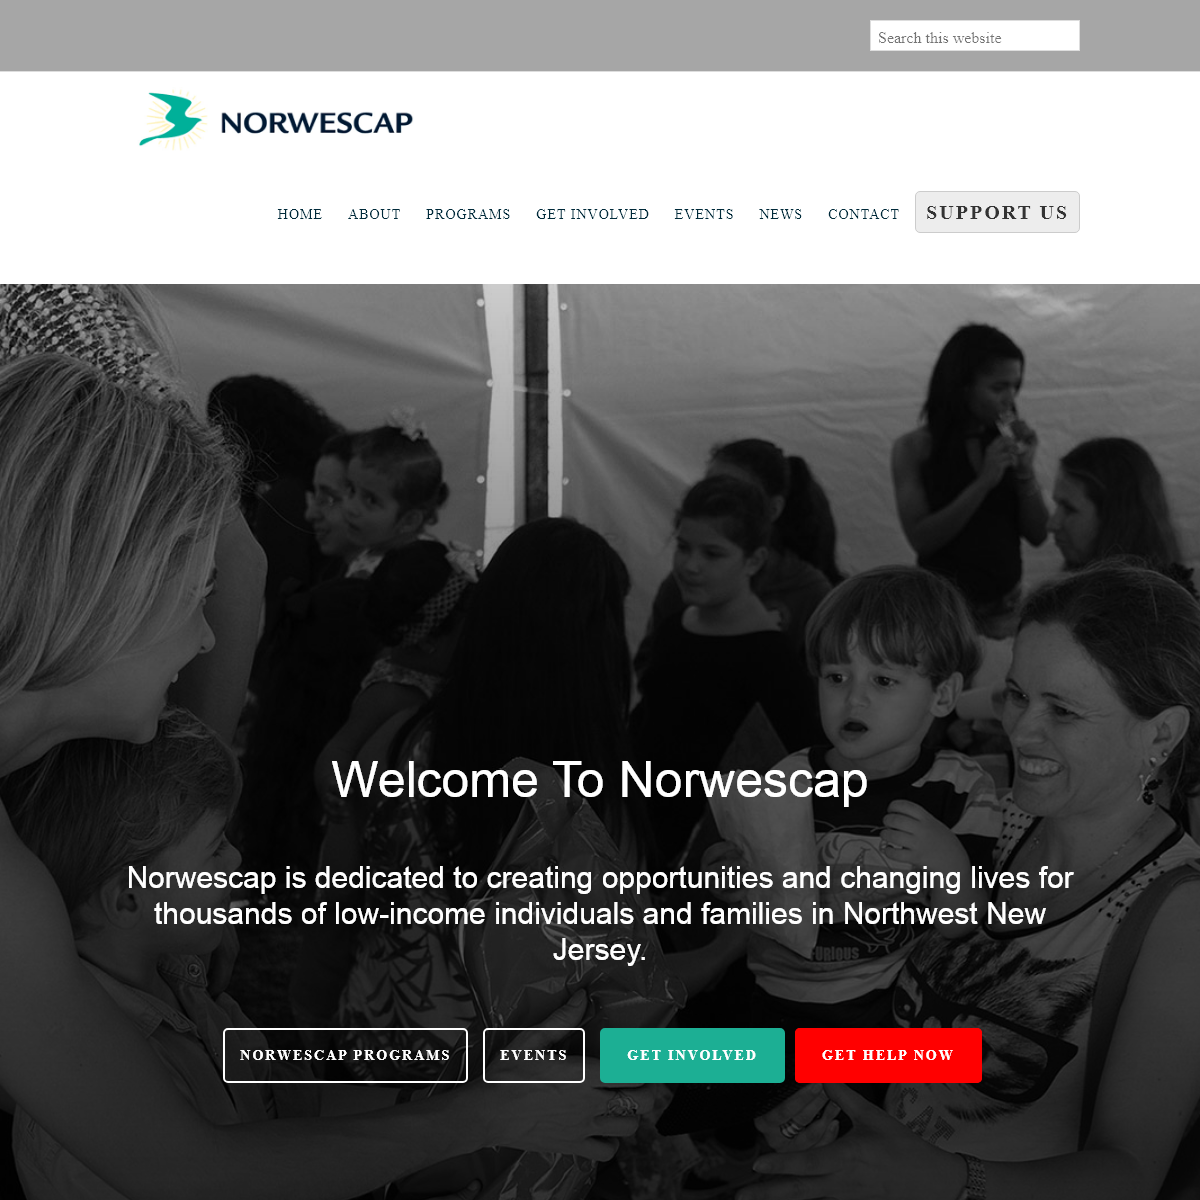 Norwescap - Creating Opportunities. Changing Lives.